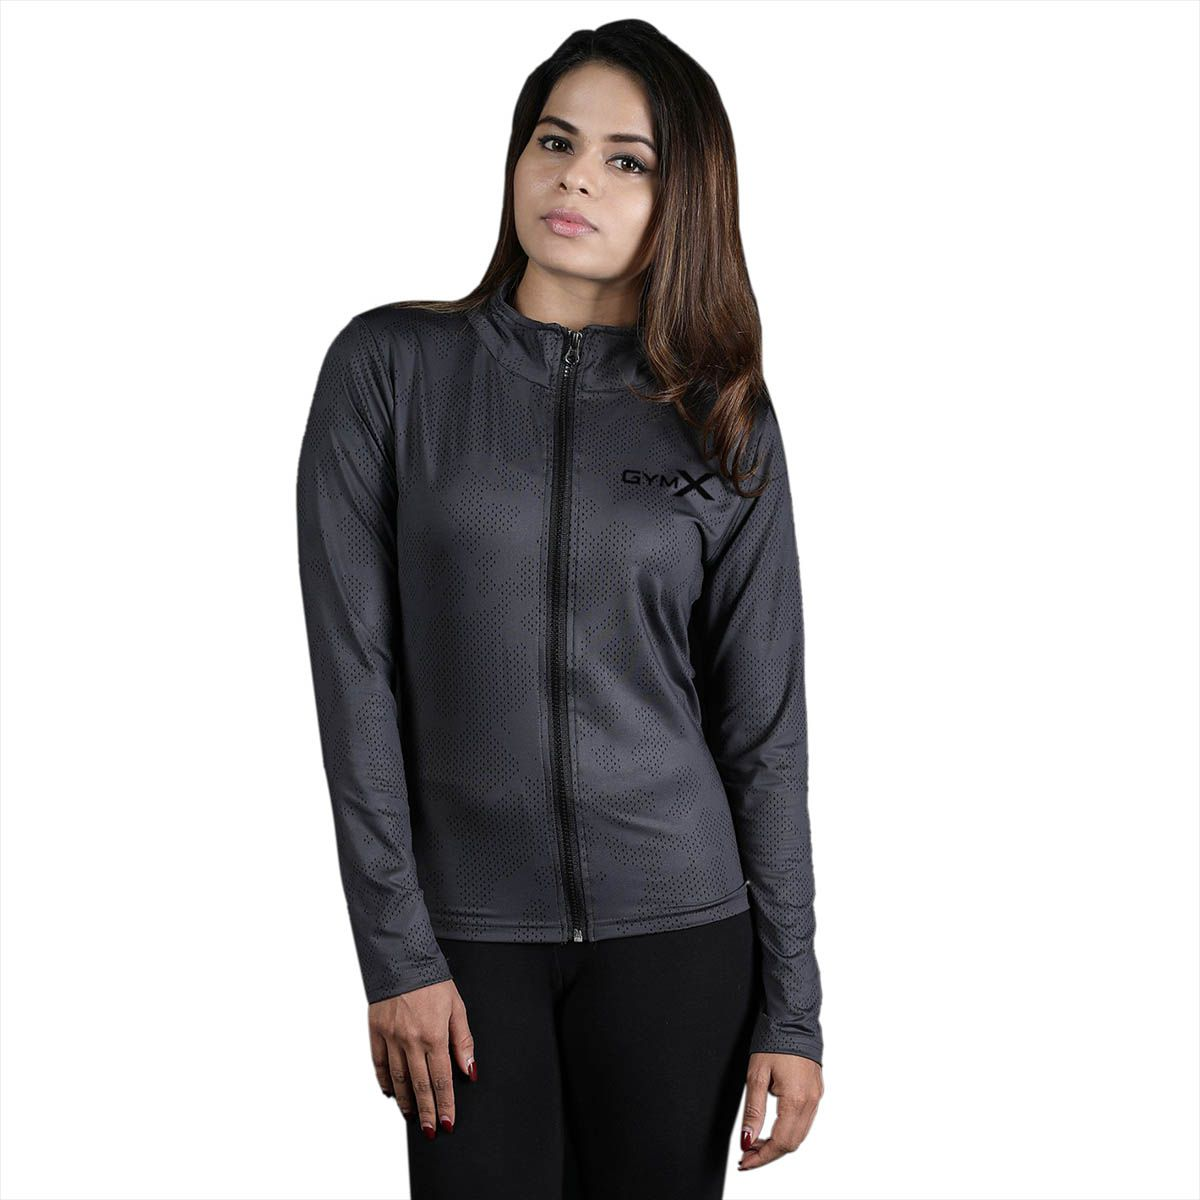 GymX Womens Royal Grey Full Zip T shirt- Athena Series(Size:Medium)